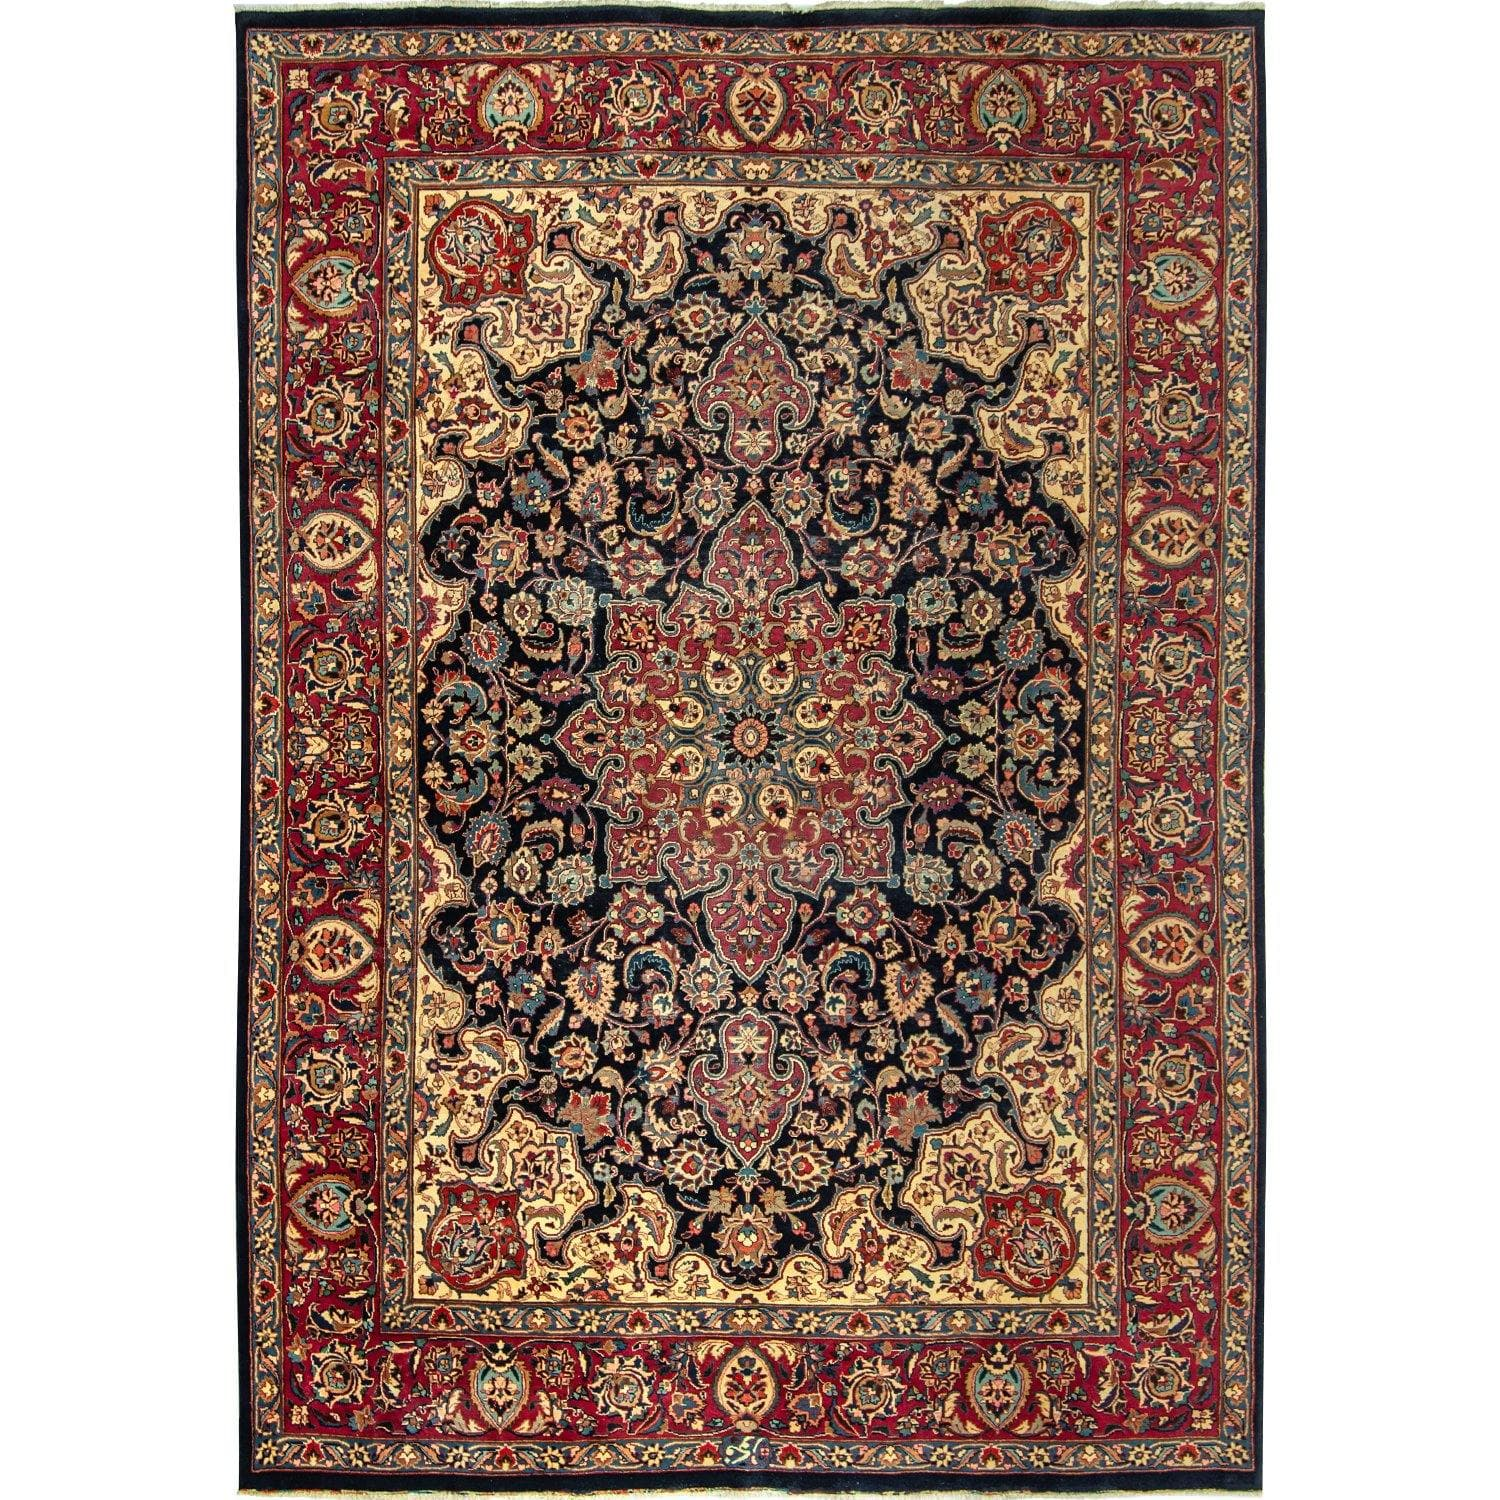 Vintage Persian Hand-knotted Wool Rug 244cm x 332cm Persian-Rug | House-of-Haghi | NewMarket | Auckland | NZ | Handmade Persian Rugs | Hand Knotted Persian Rugs